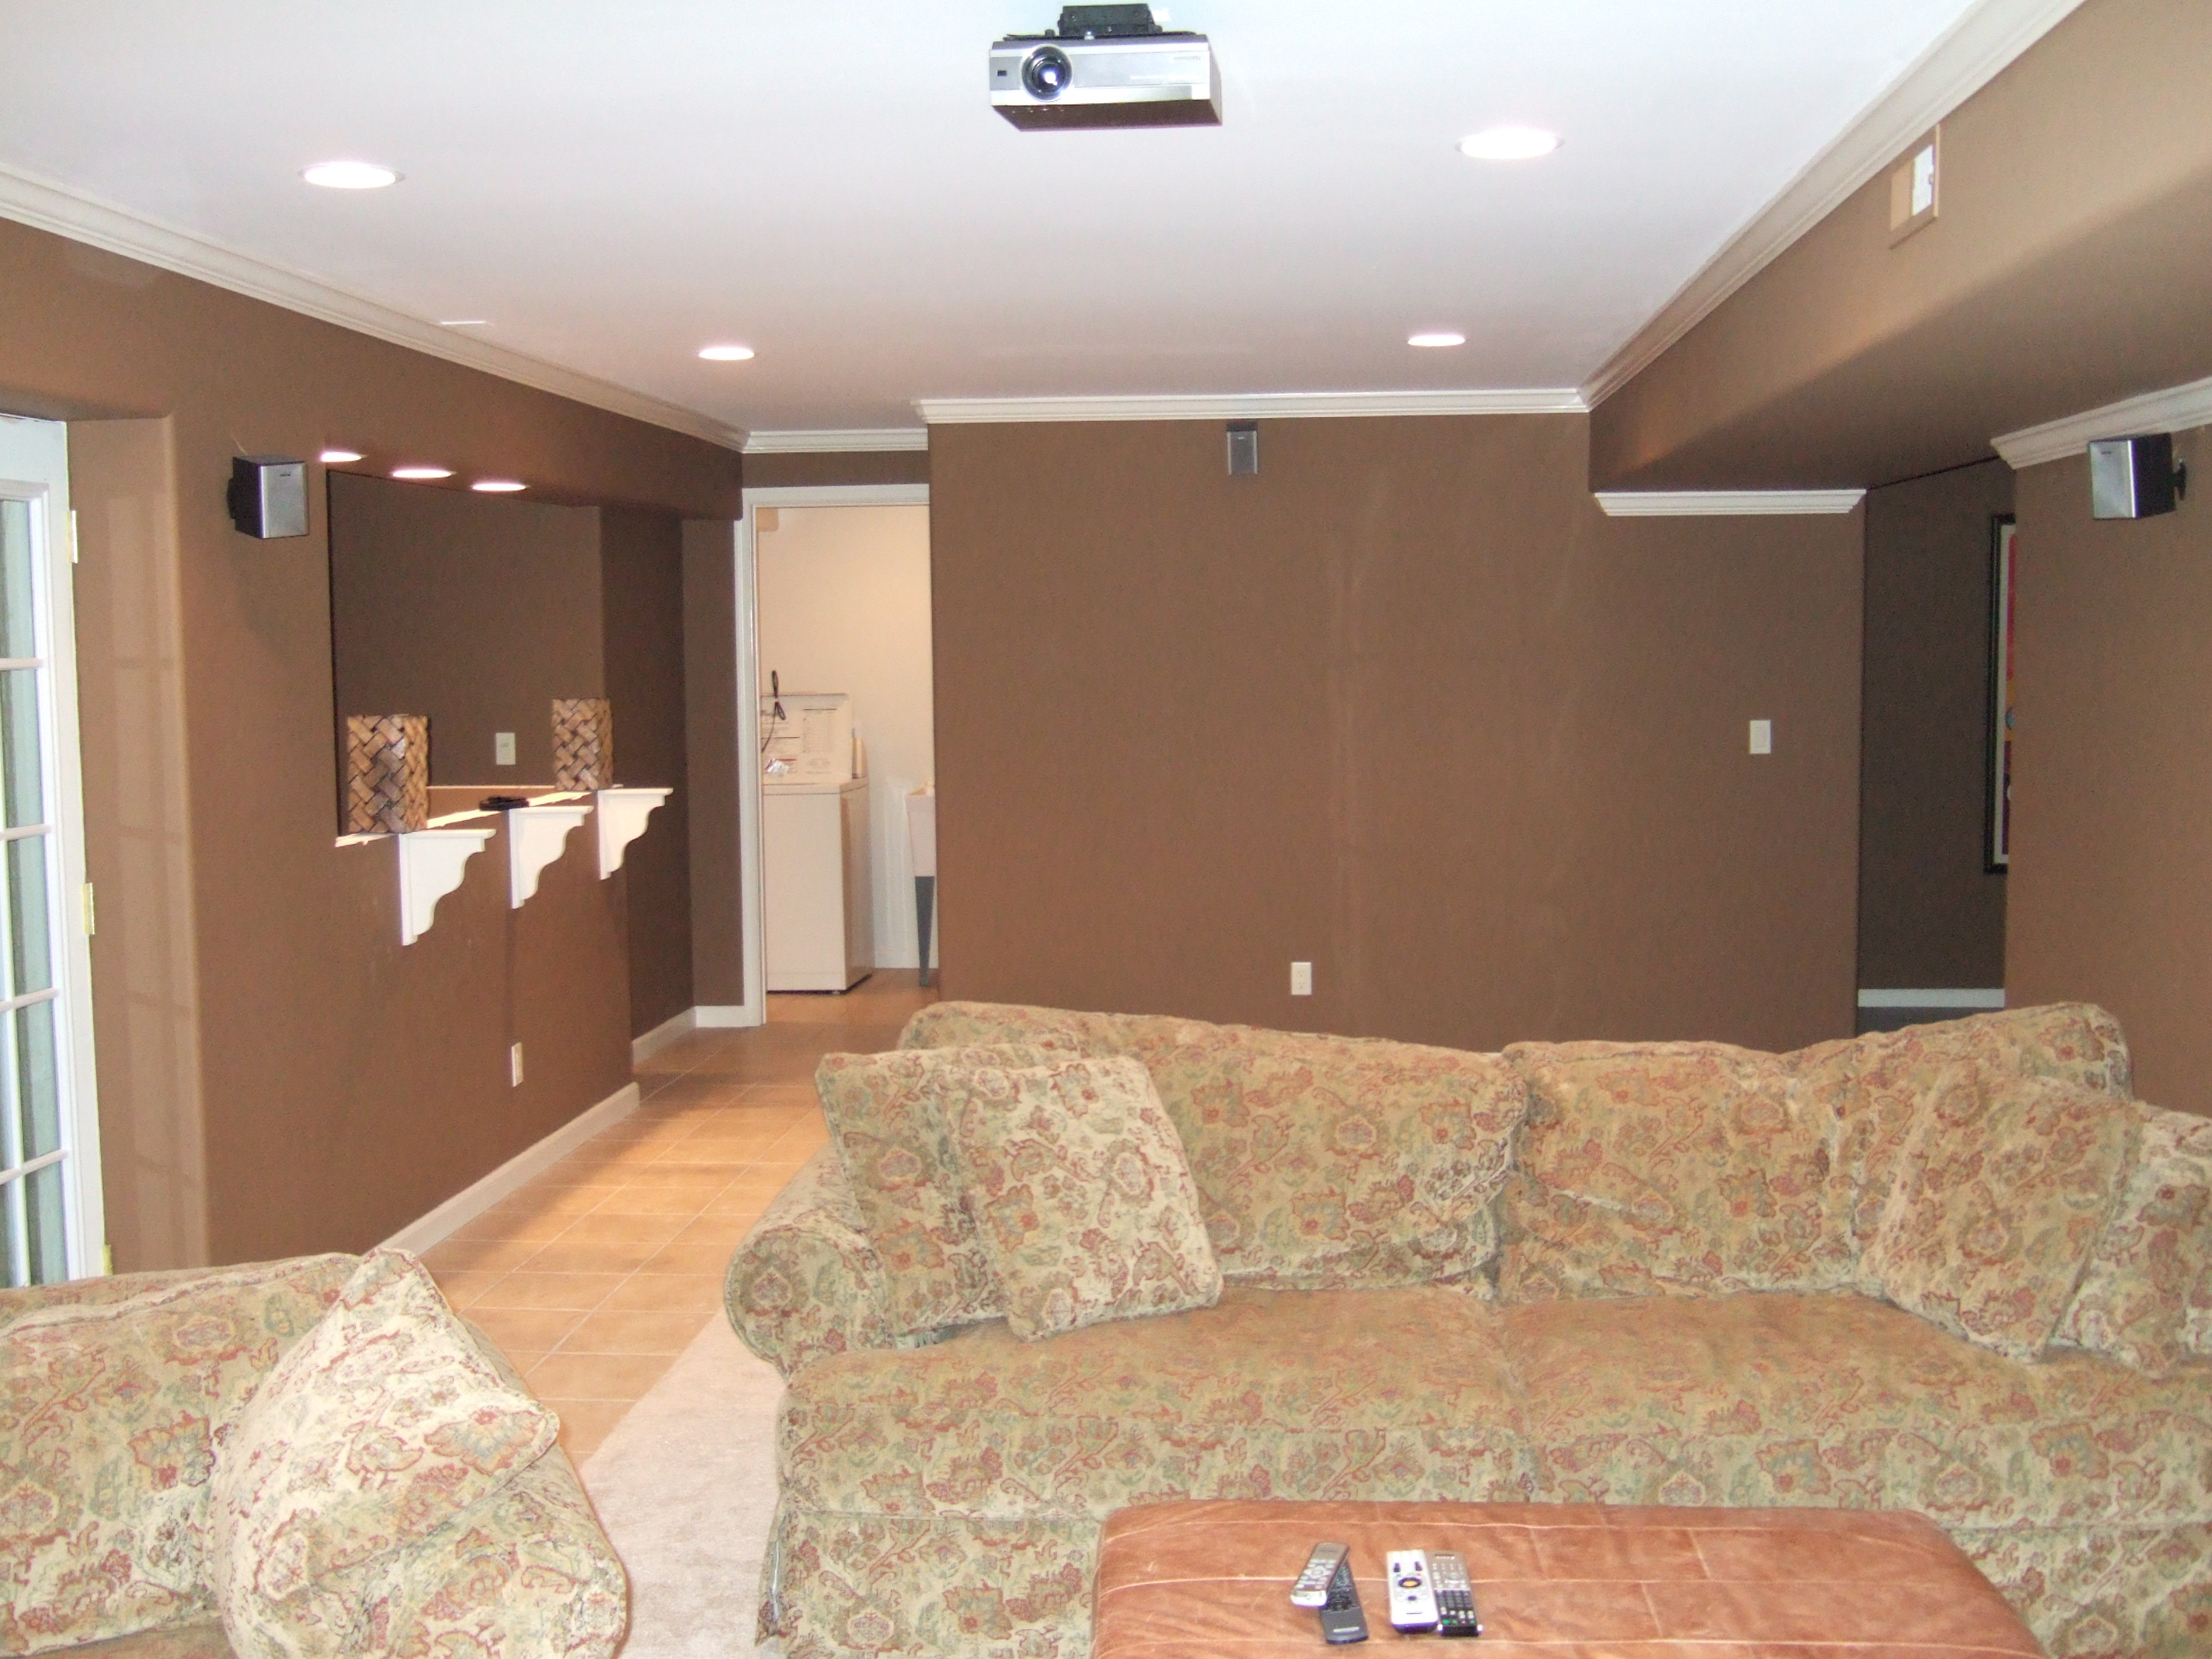 Stunning Small Finished Basement Ideas 2848 x 2136 · 1476 kB · jpeg